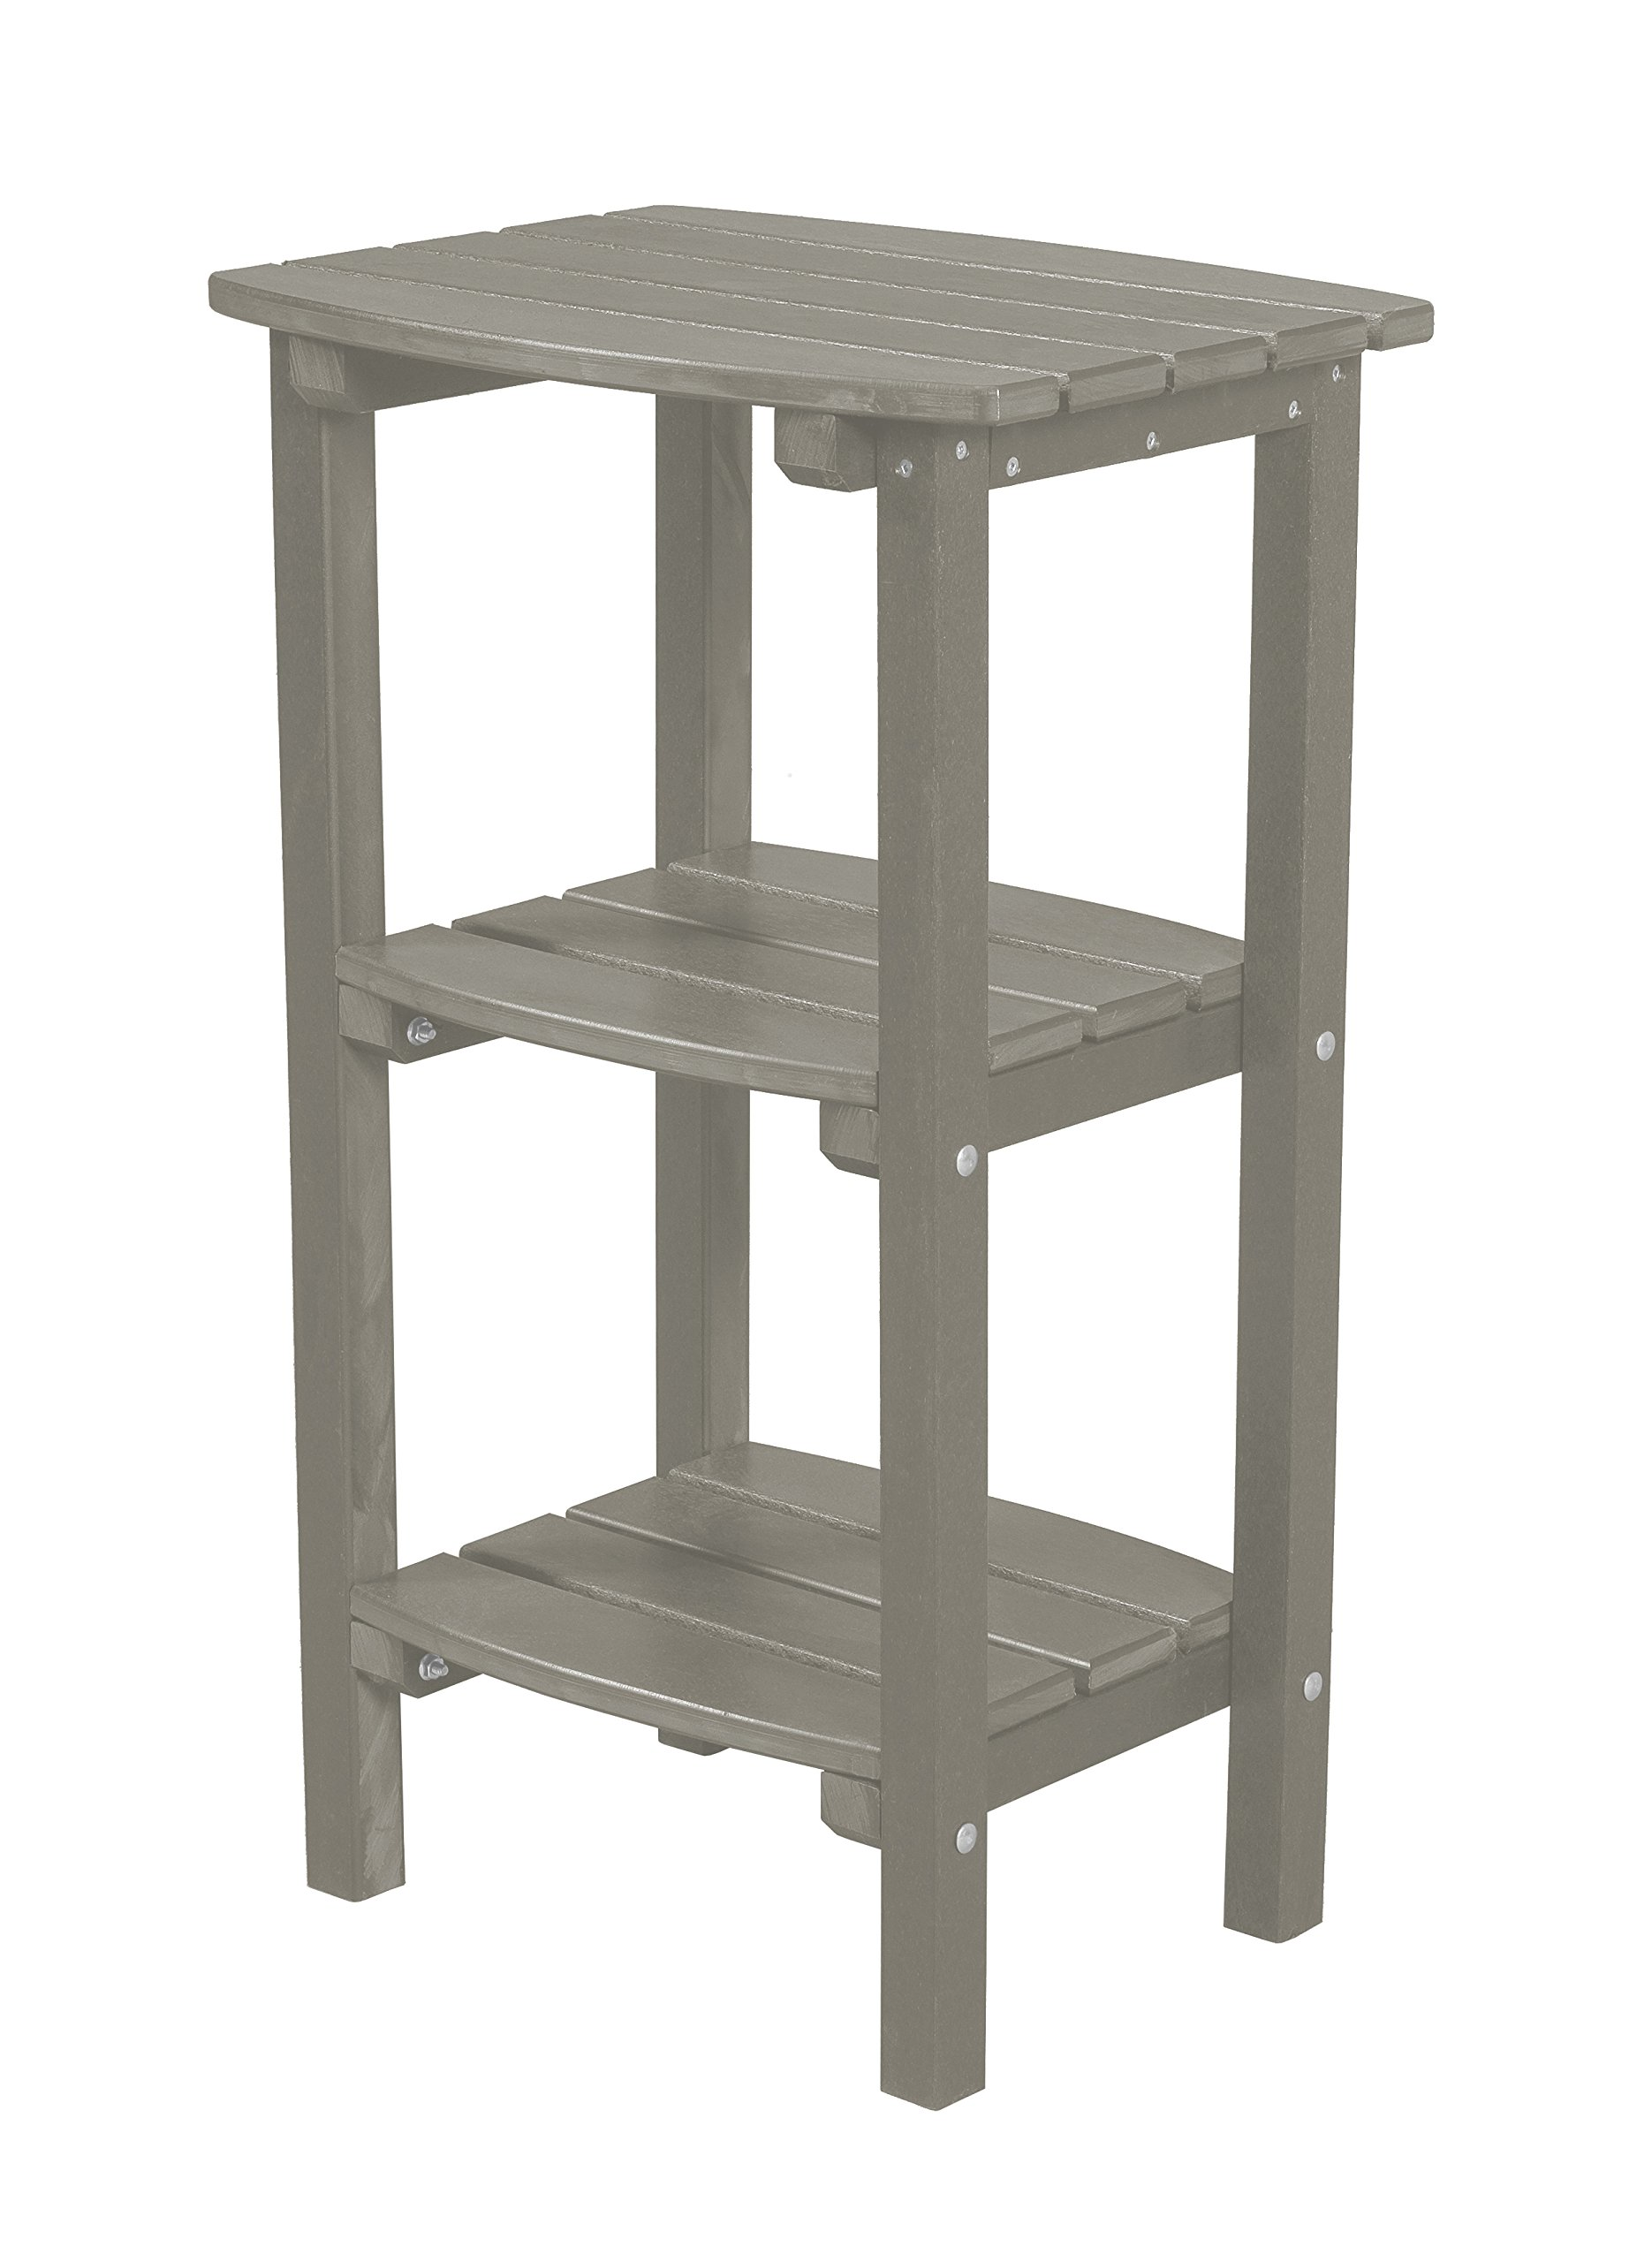 Little Cottage Company LCC-221 Classic 3 Shelf Side Table, Light Gray by Little Cottage Company